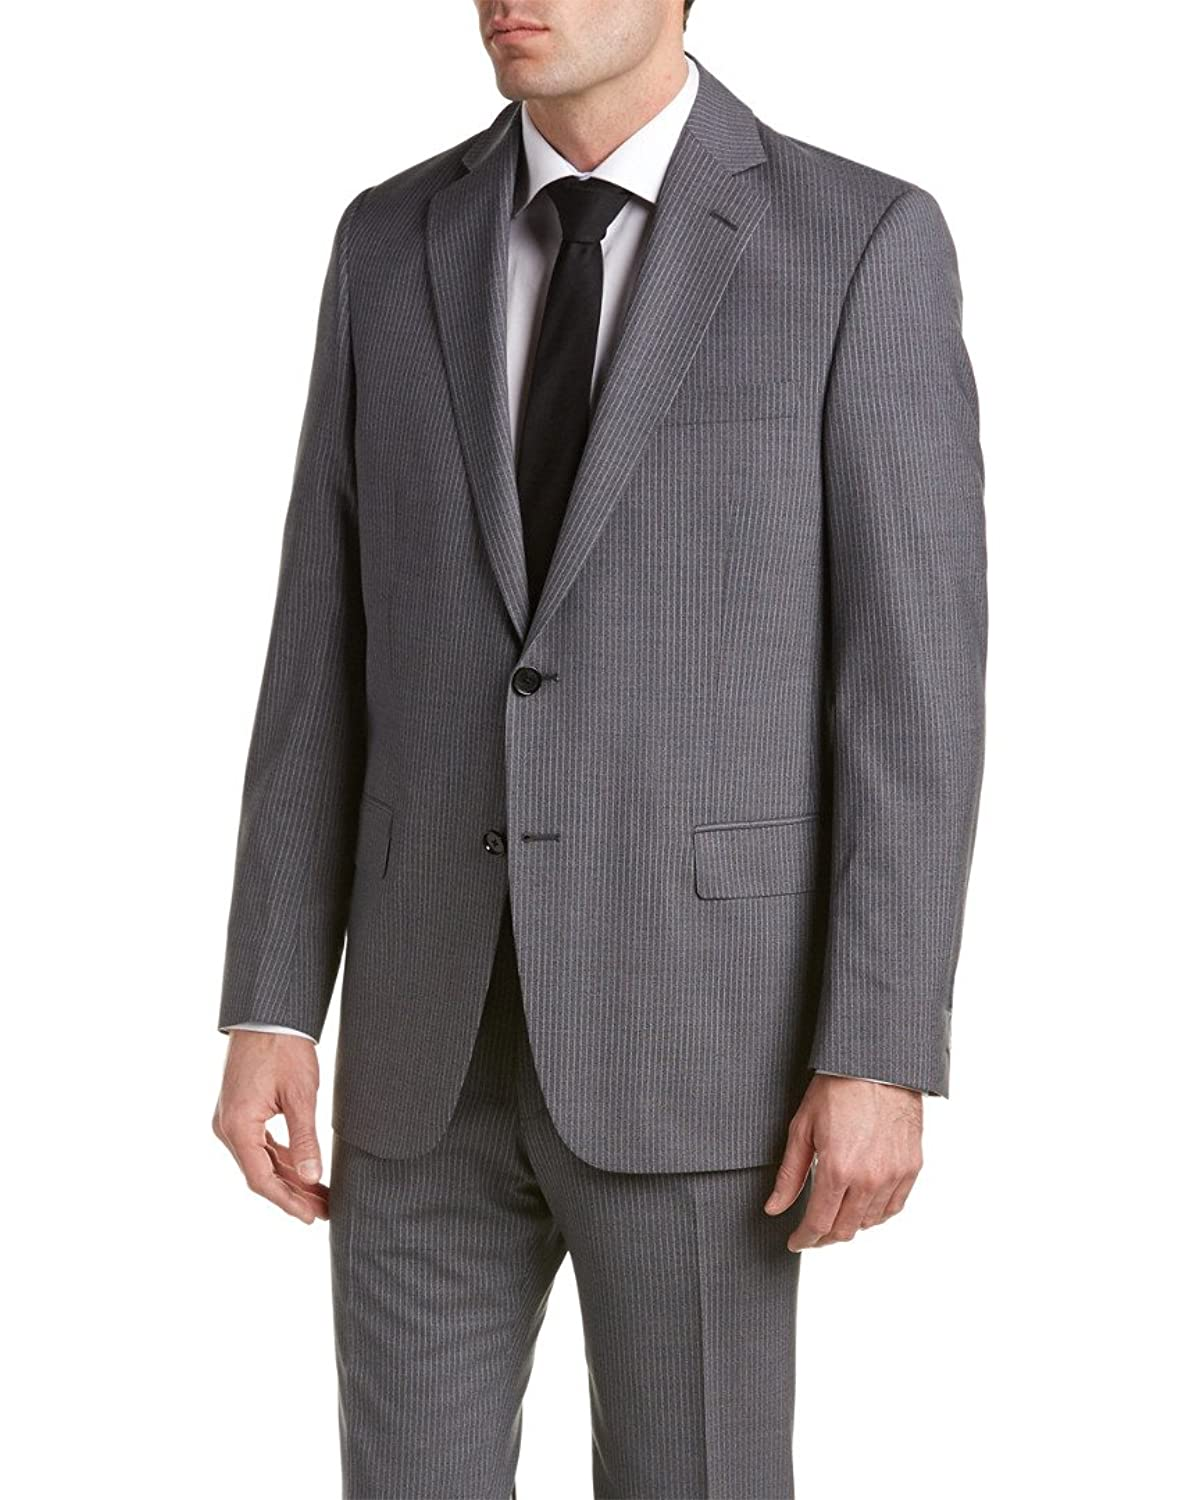 Hart Schaffner Marx Mens Wool-Blend Suit With Flat Front Pant, 42R, Grey